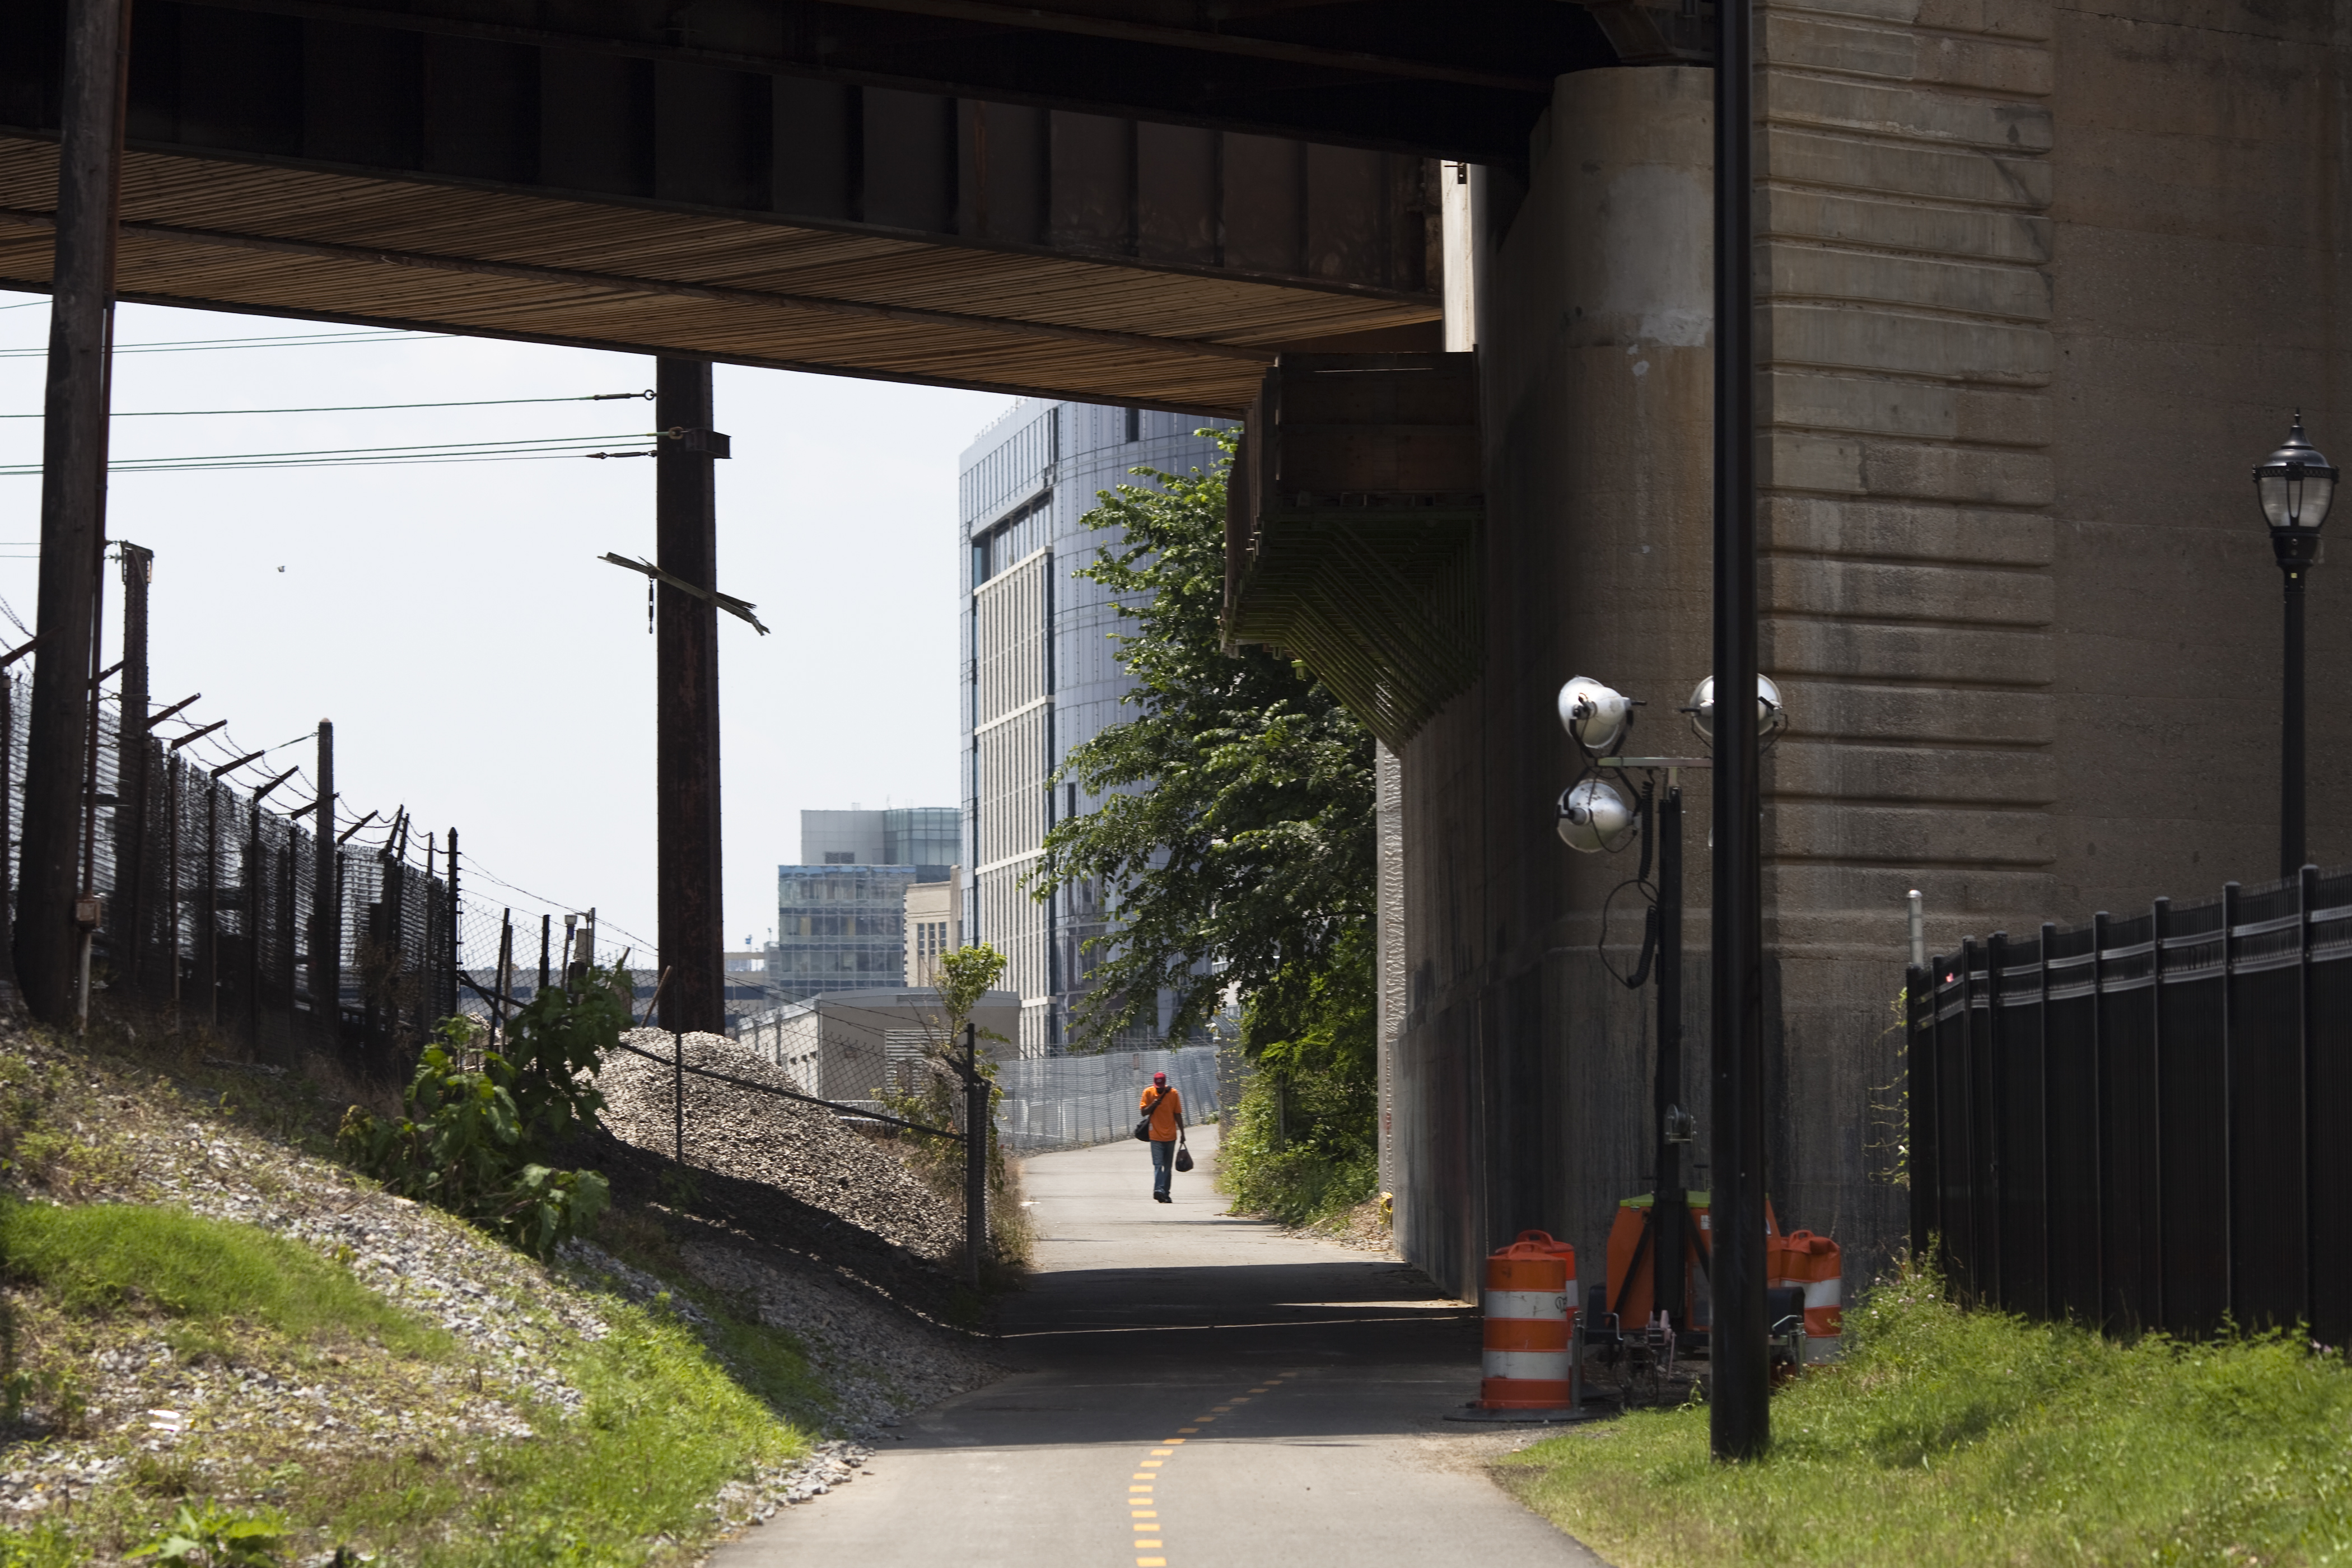 A two-way multiuse trail runs under an overpass. A man is seen walking on the trail in the distance.